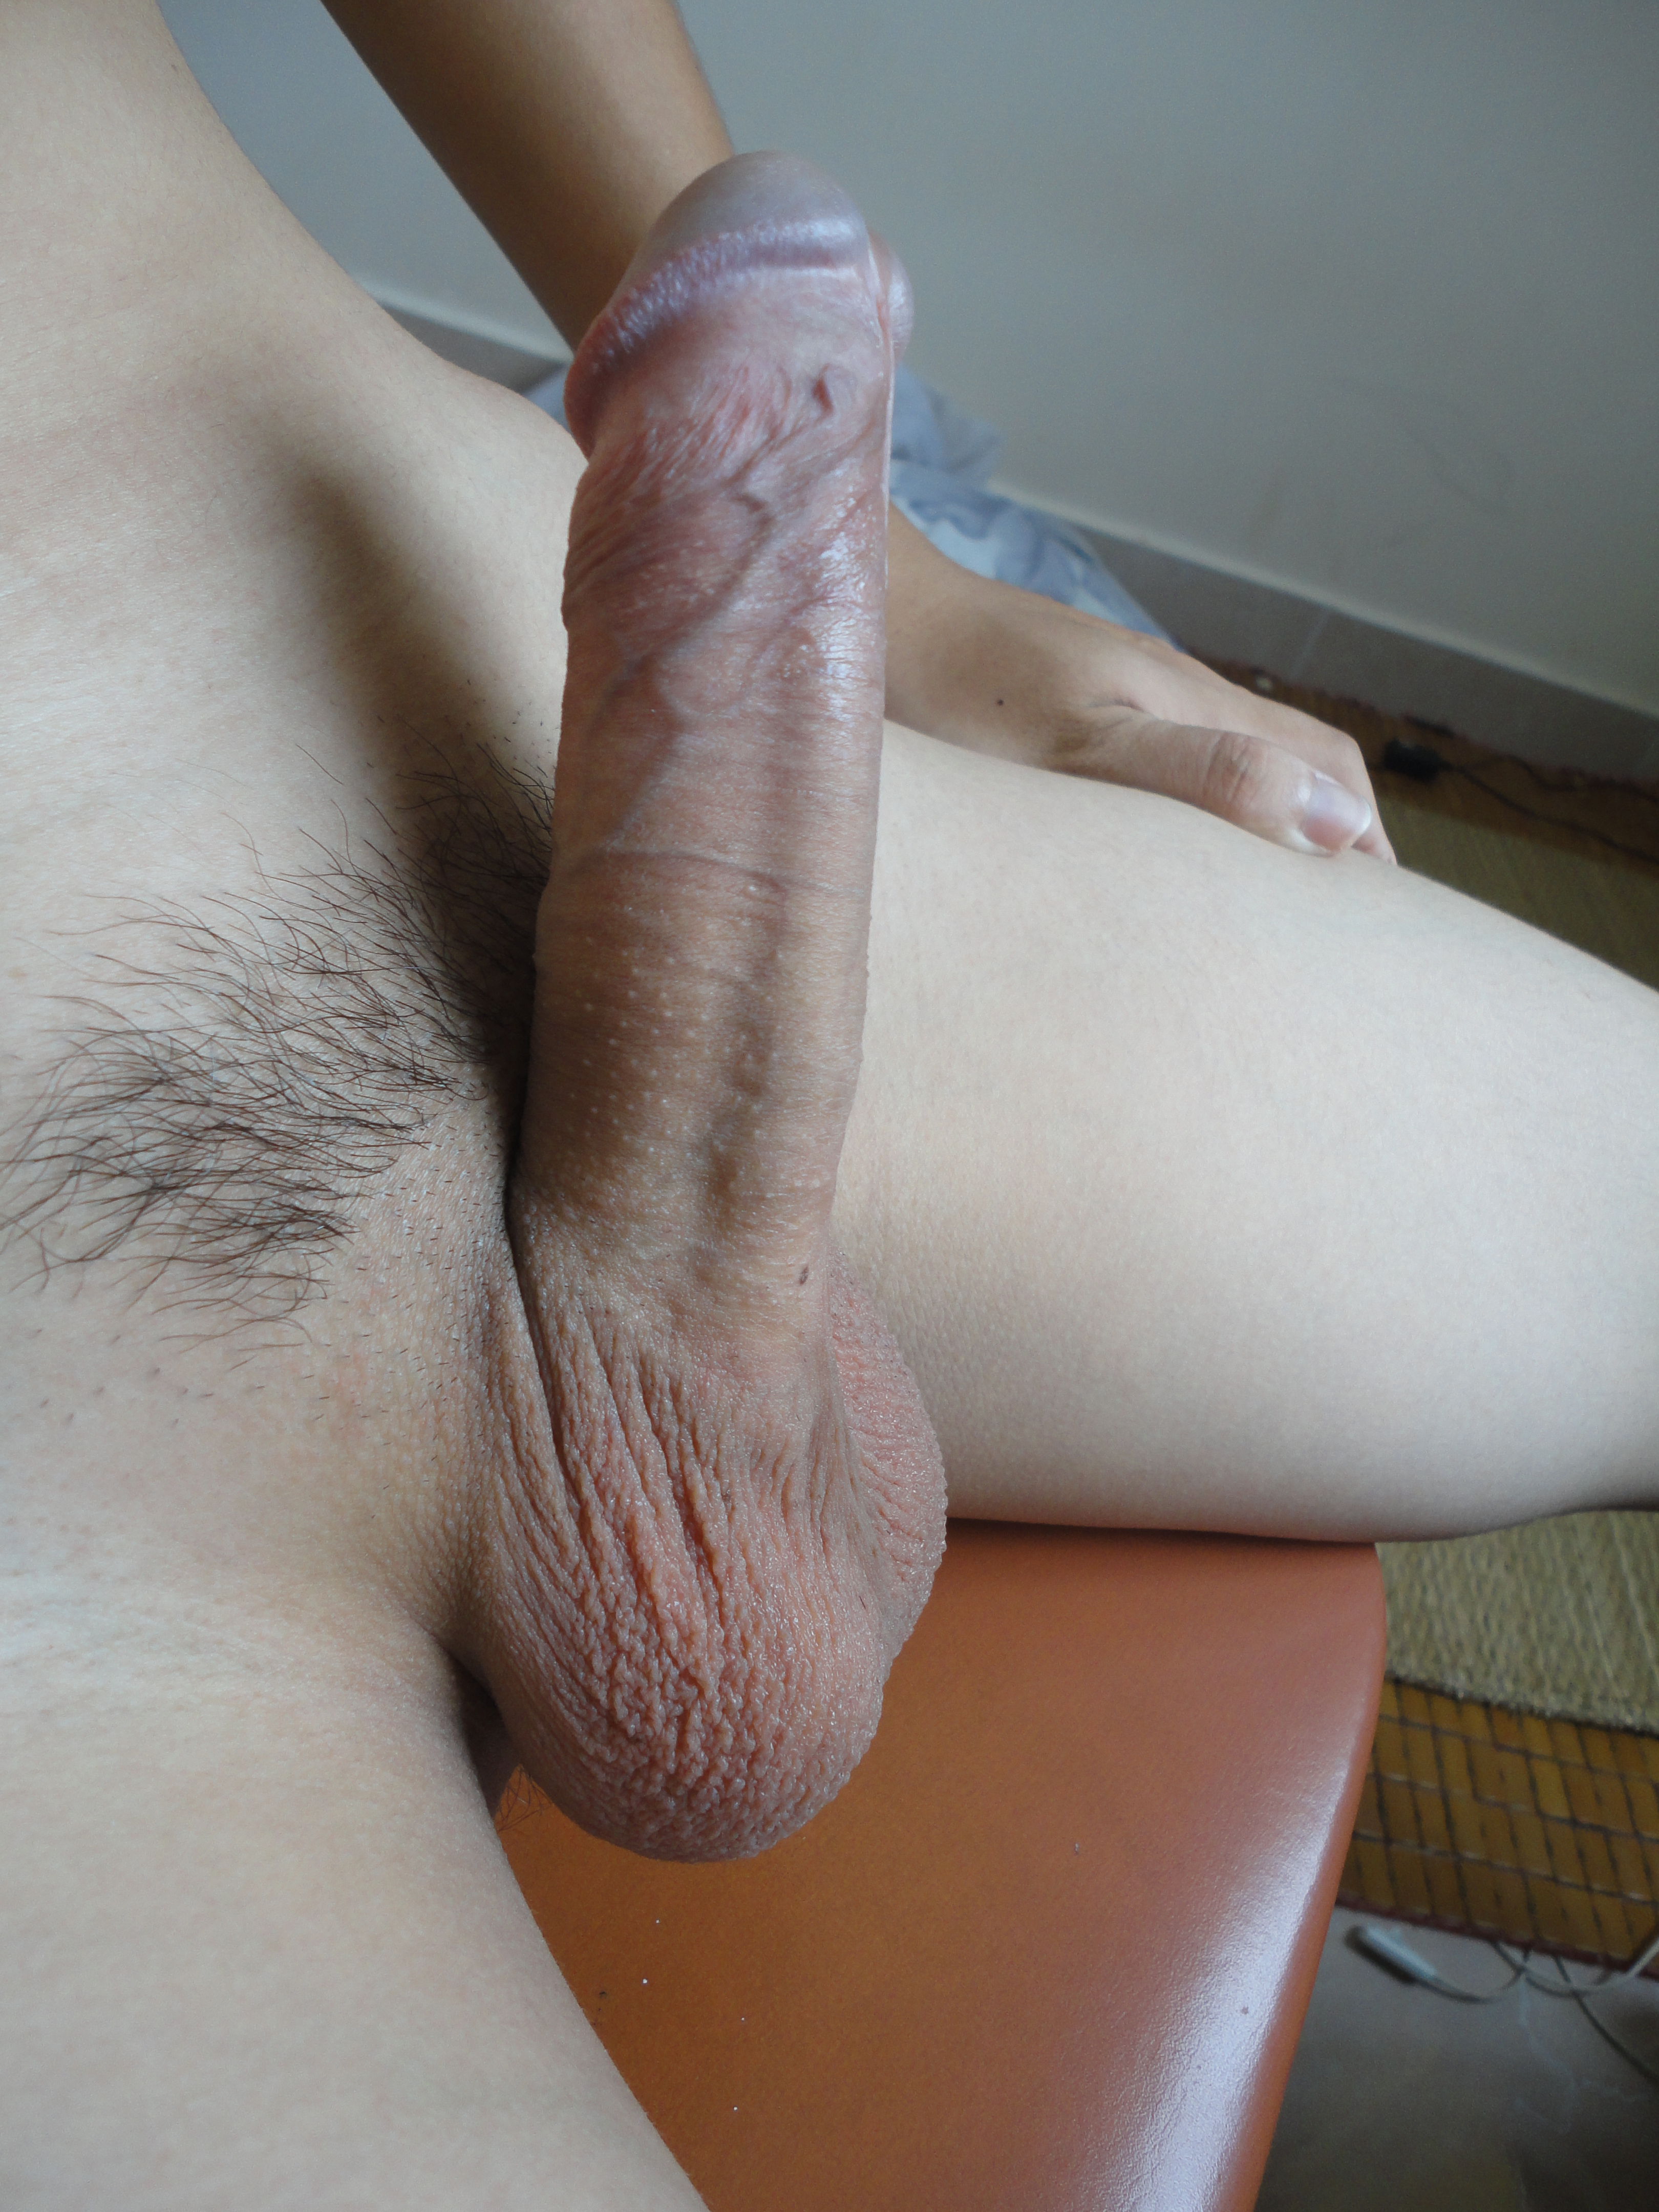 massage rooms full sex service slow and intense tmb